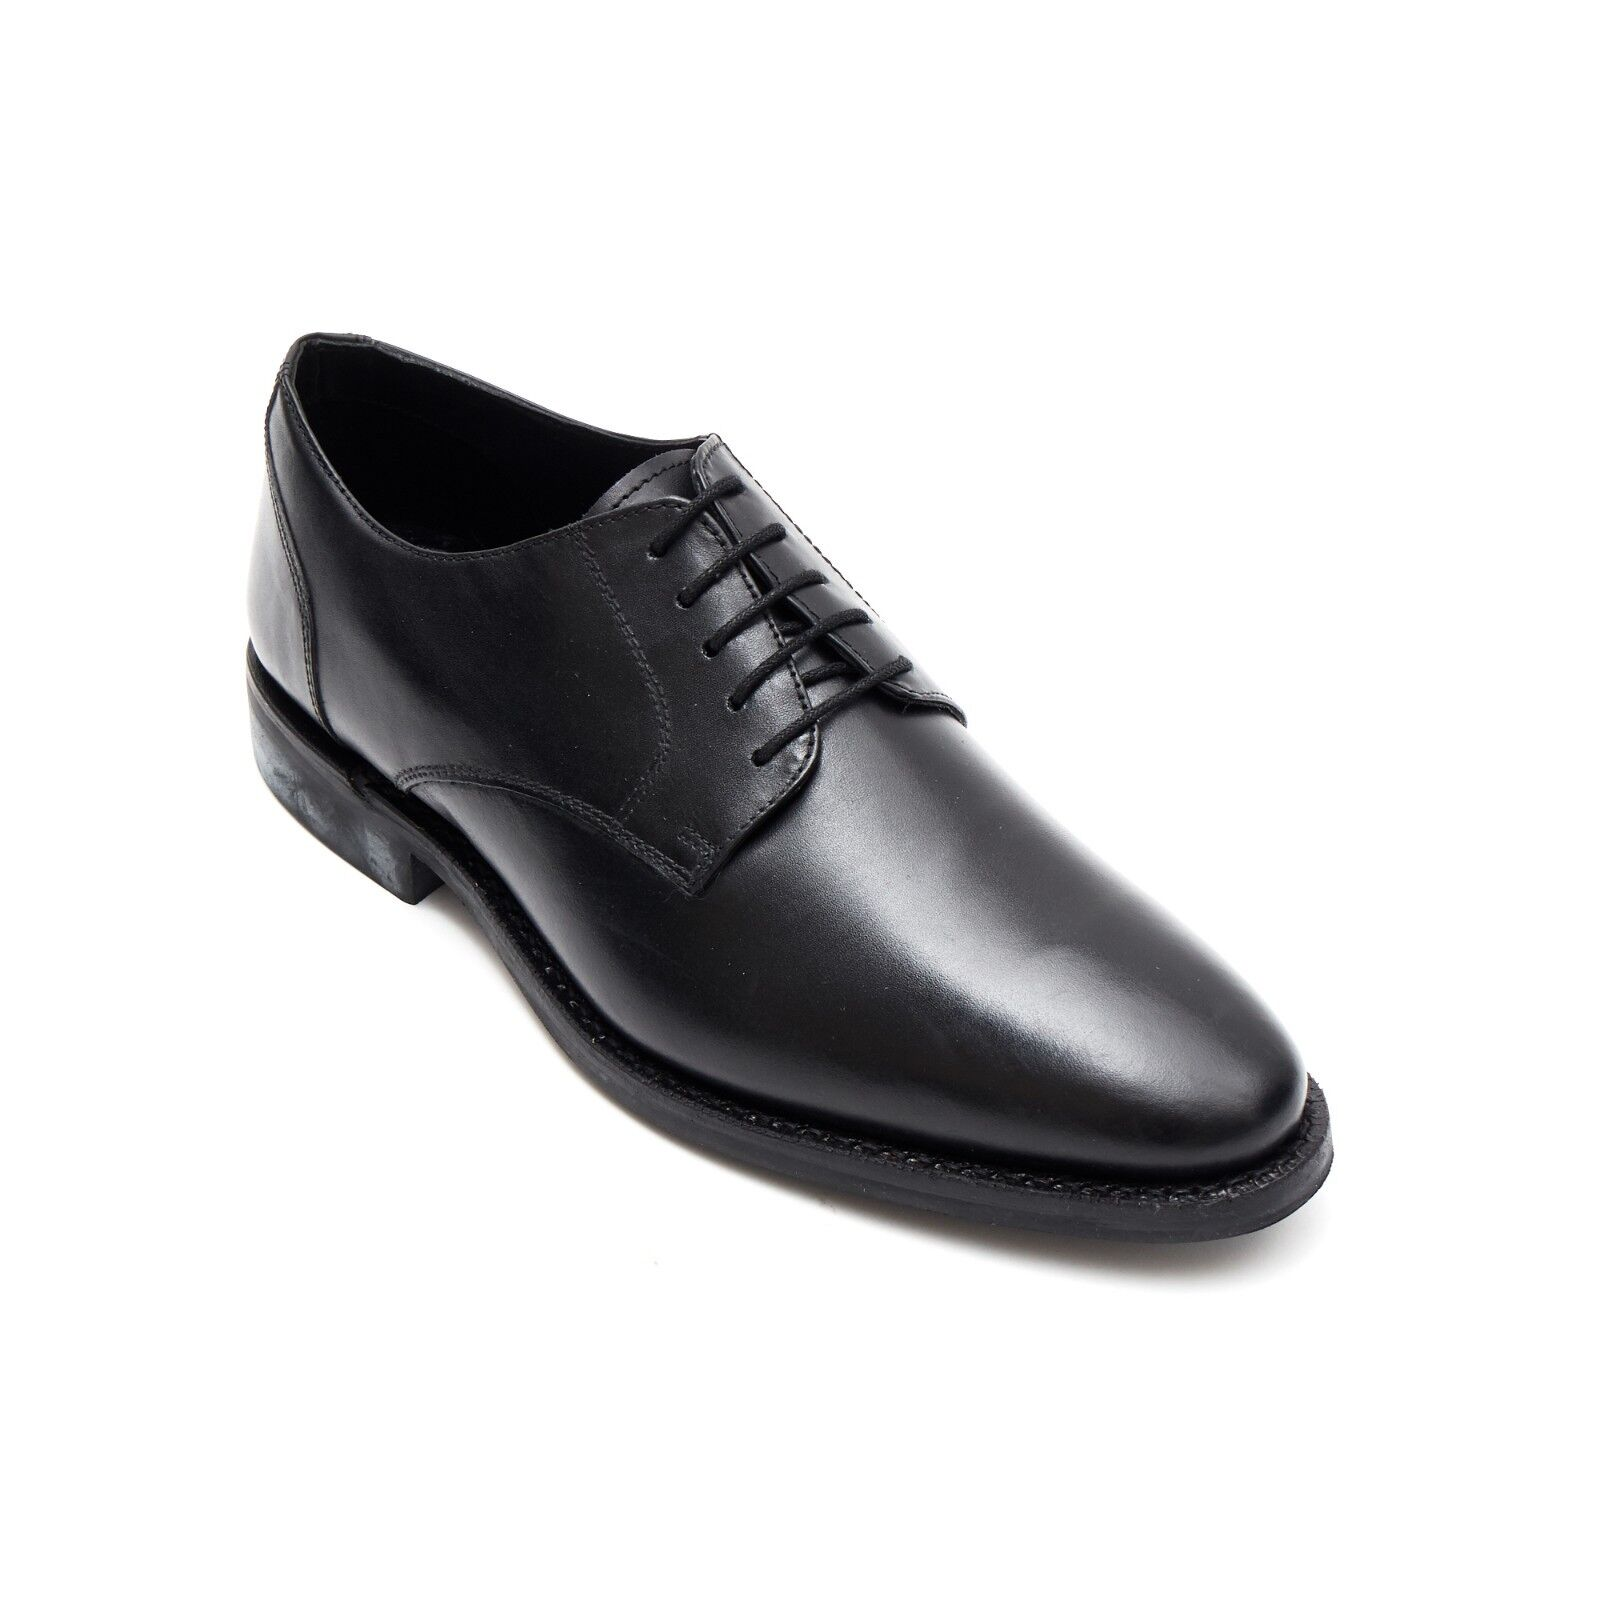 Lucini Derby Goodyear Welted Dainite Sole Black Real Leather